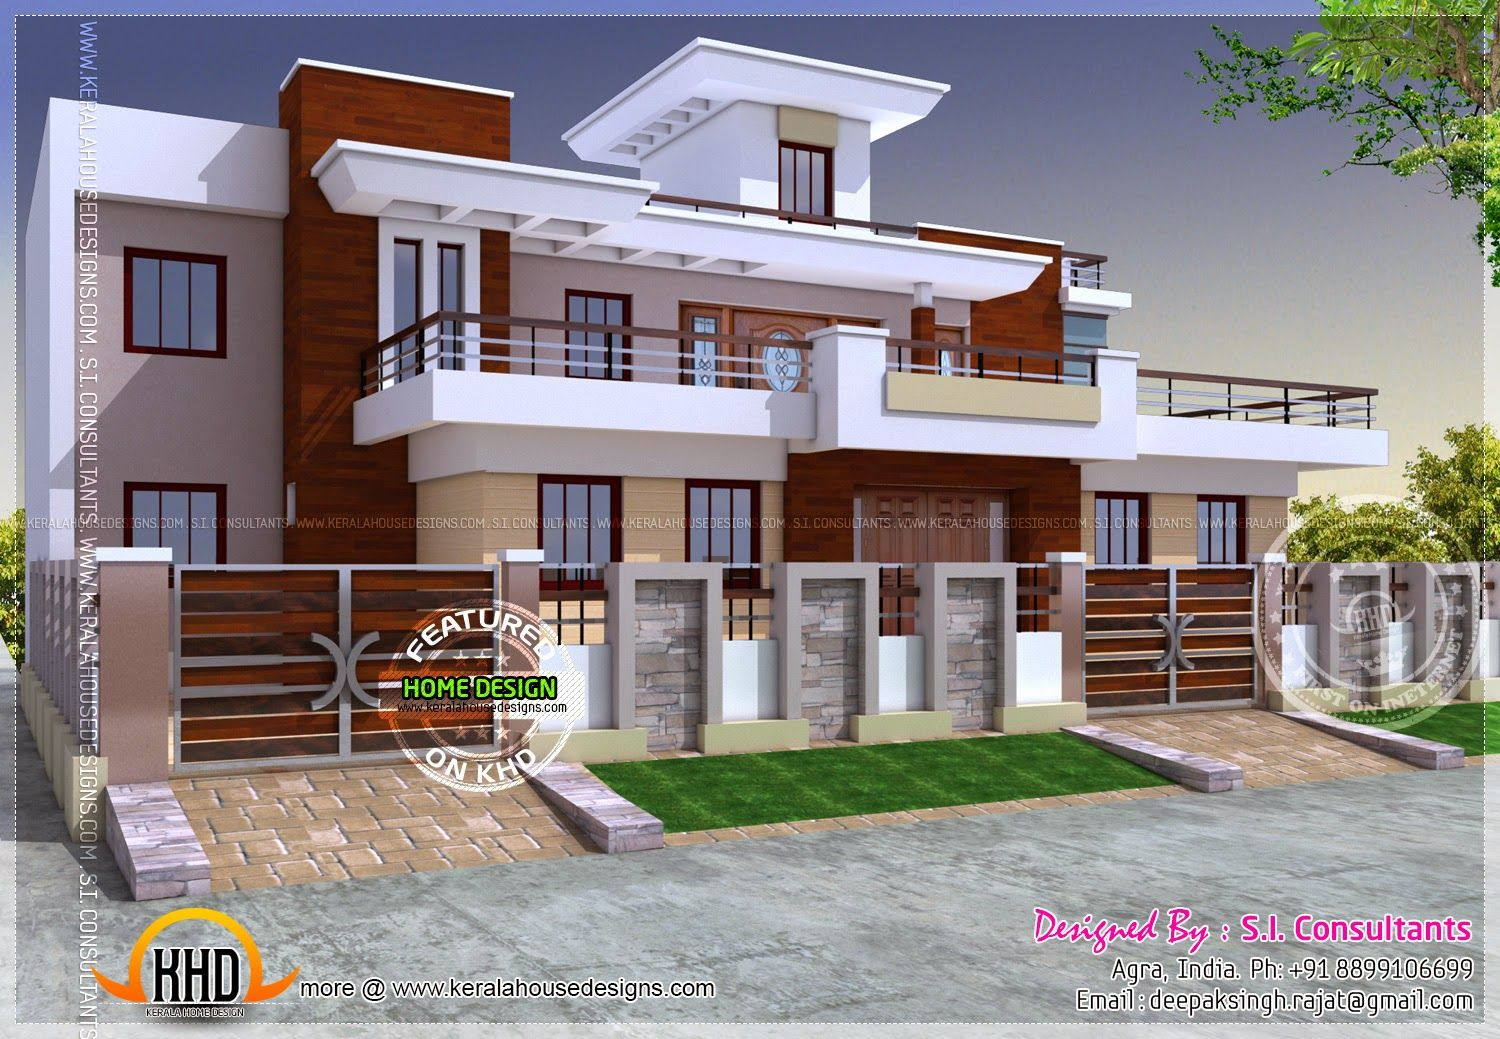 Modern Style House Design India Kerala Designs Village House Design Kerala House Design House Design